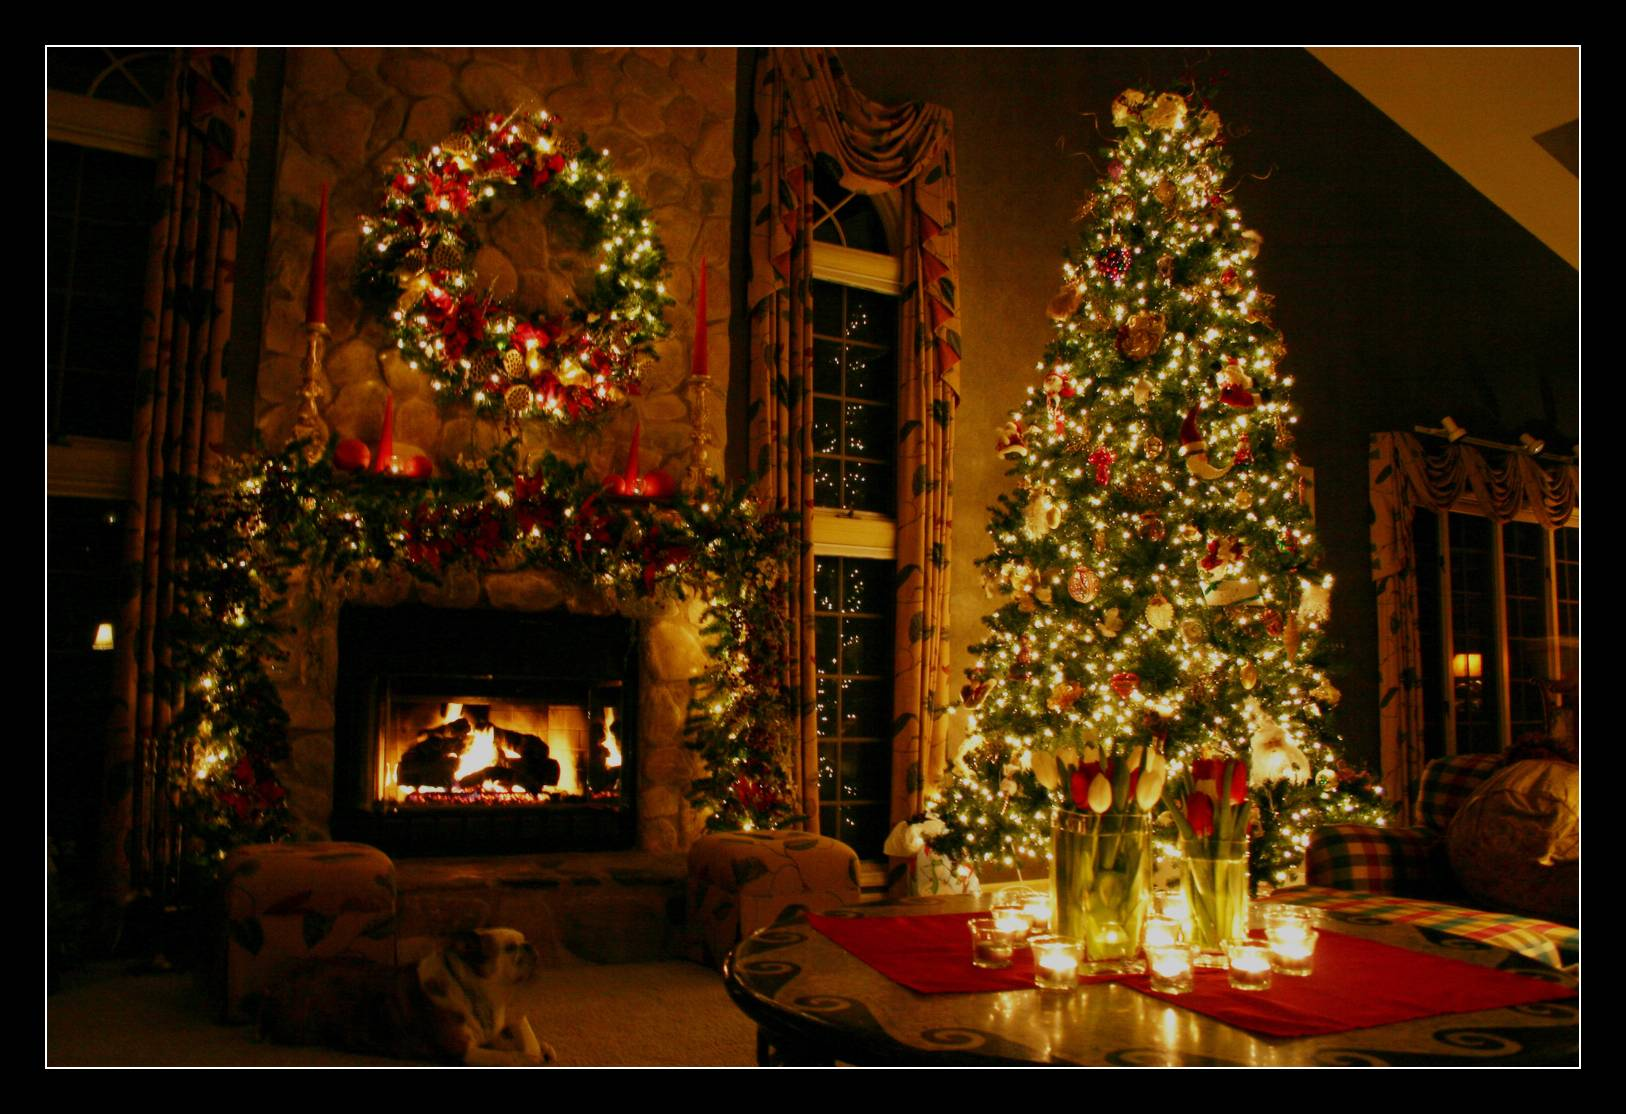 Christmas Fireplace Backgrounds 1626x1114